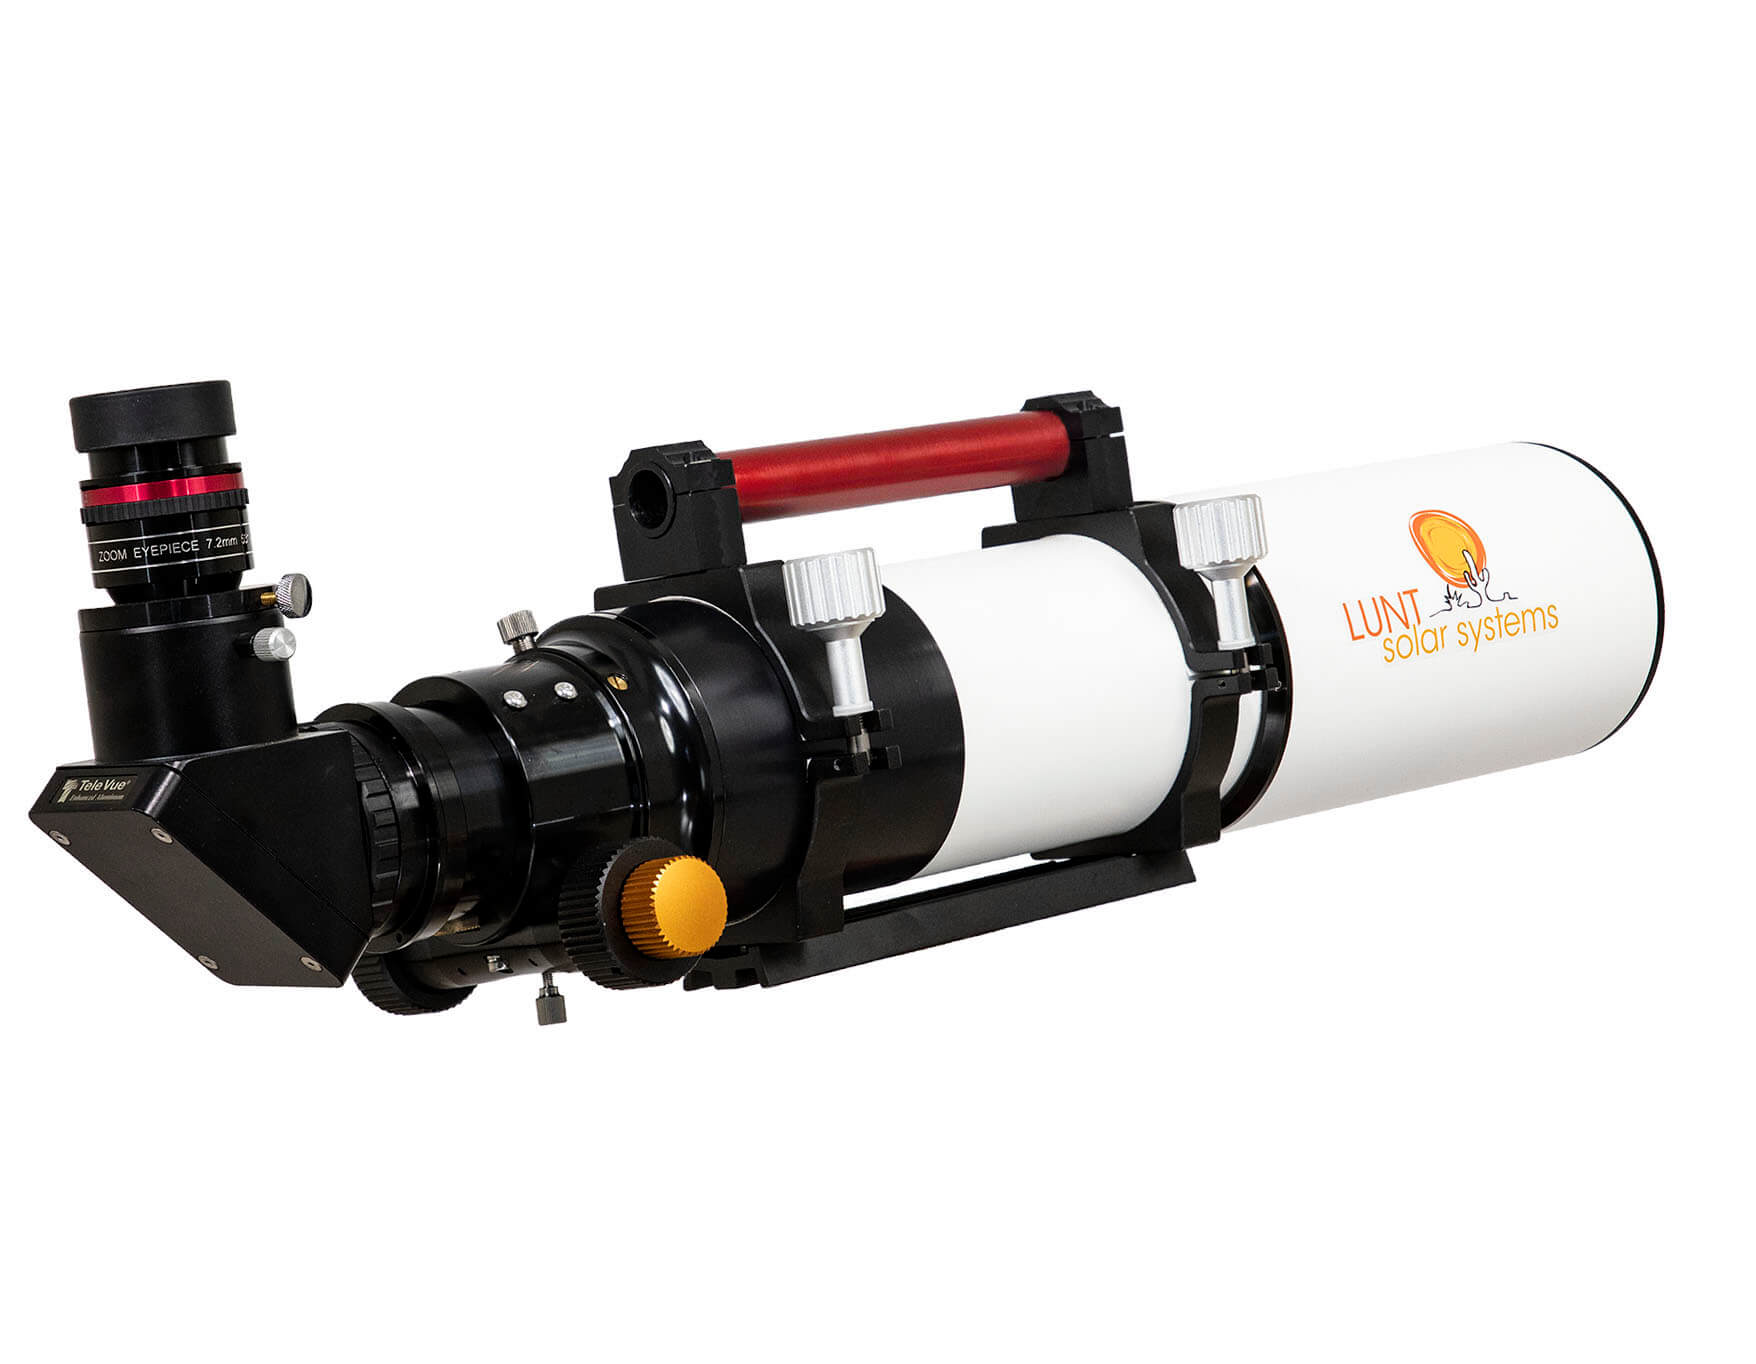 Lunt 100mm MT Refractor Telescope